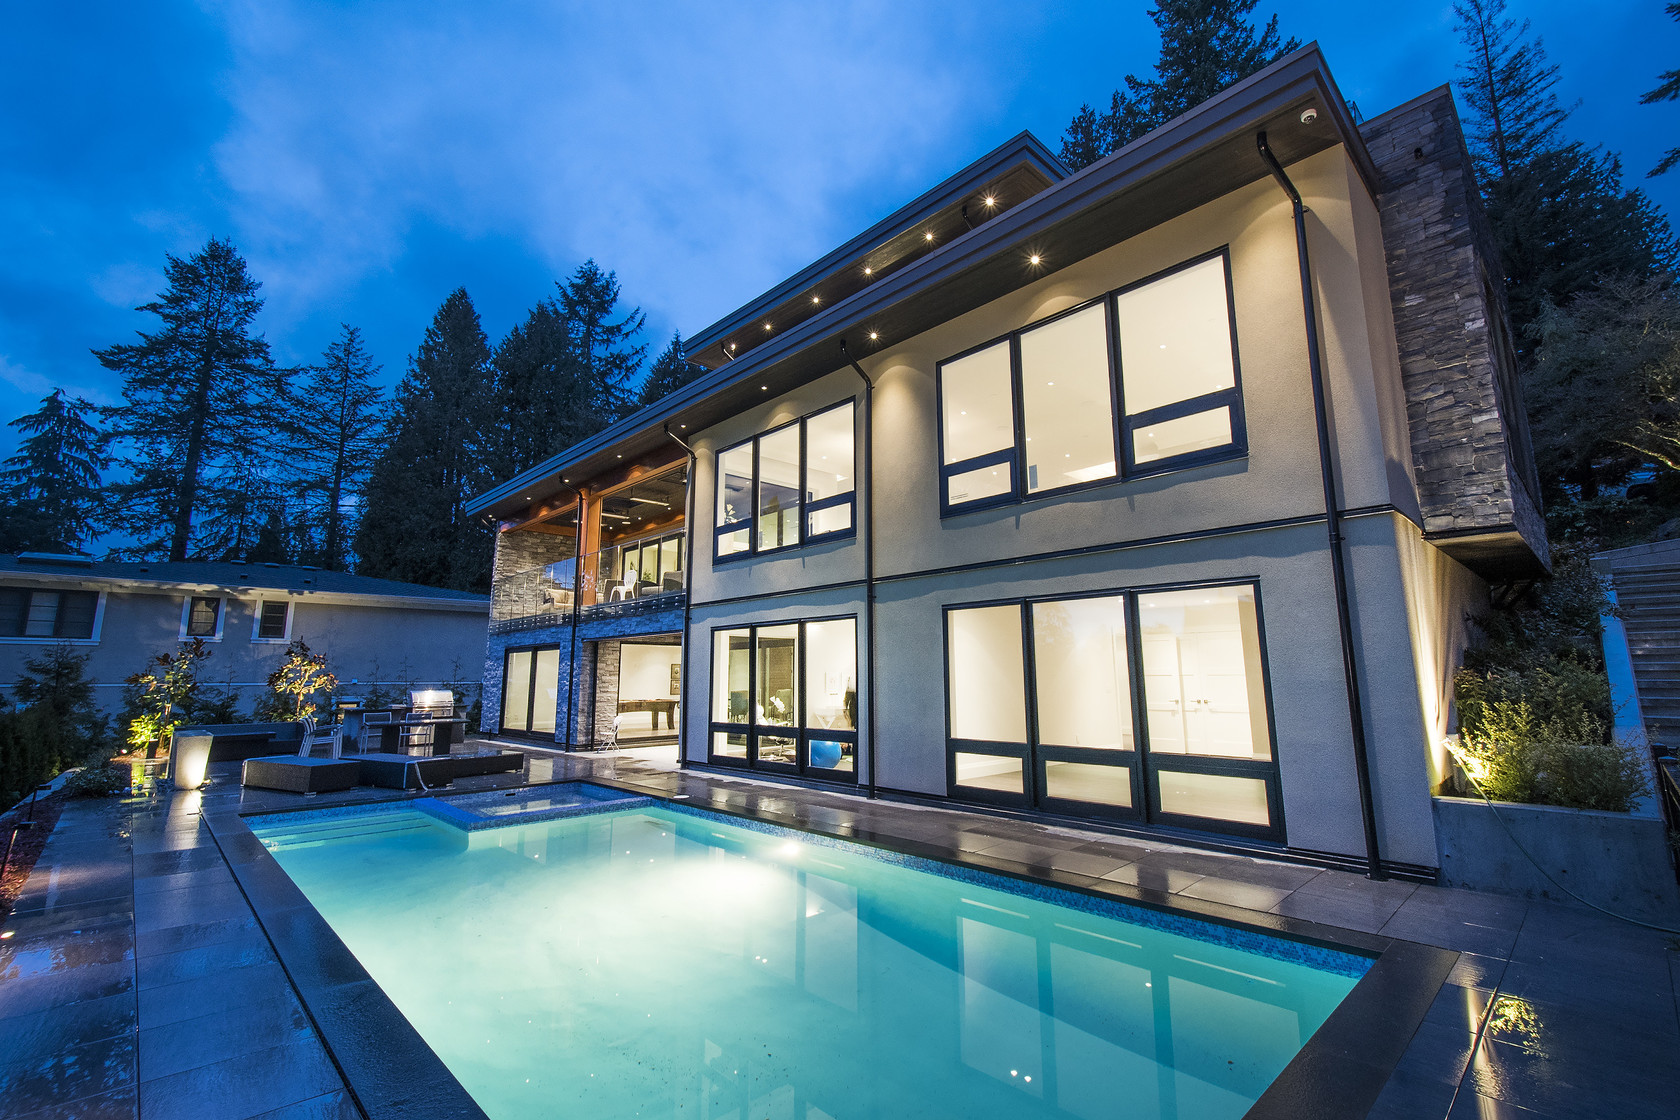 046 at 1677 29th Street, Altamont, West Vancouver